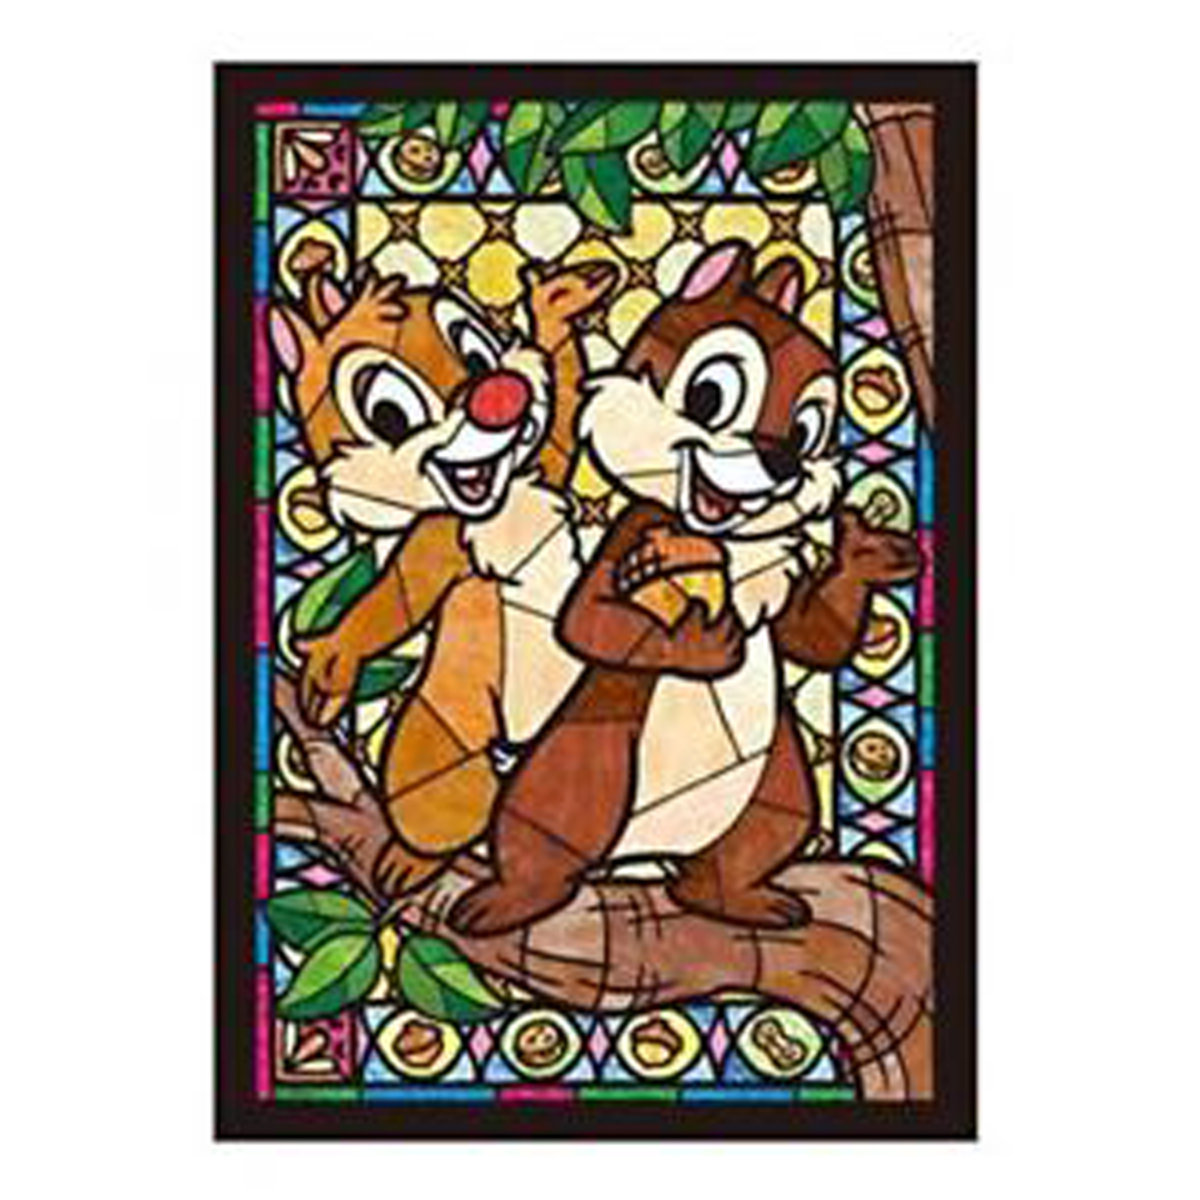 DSG-266-749 266 pieces puzzle Chip and Dale (4905823857496) [Licensed by Disney]